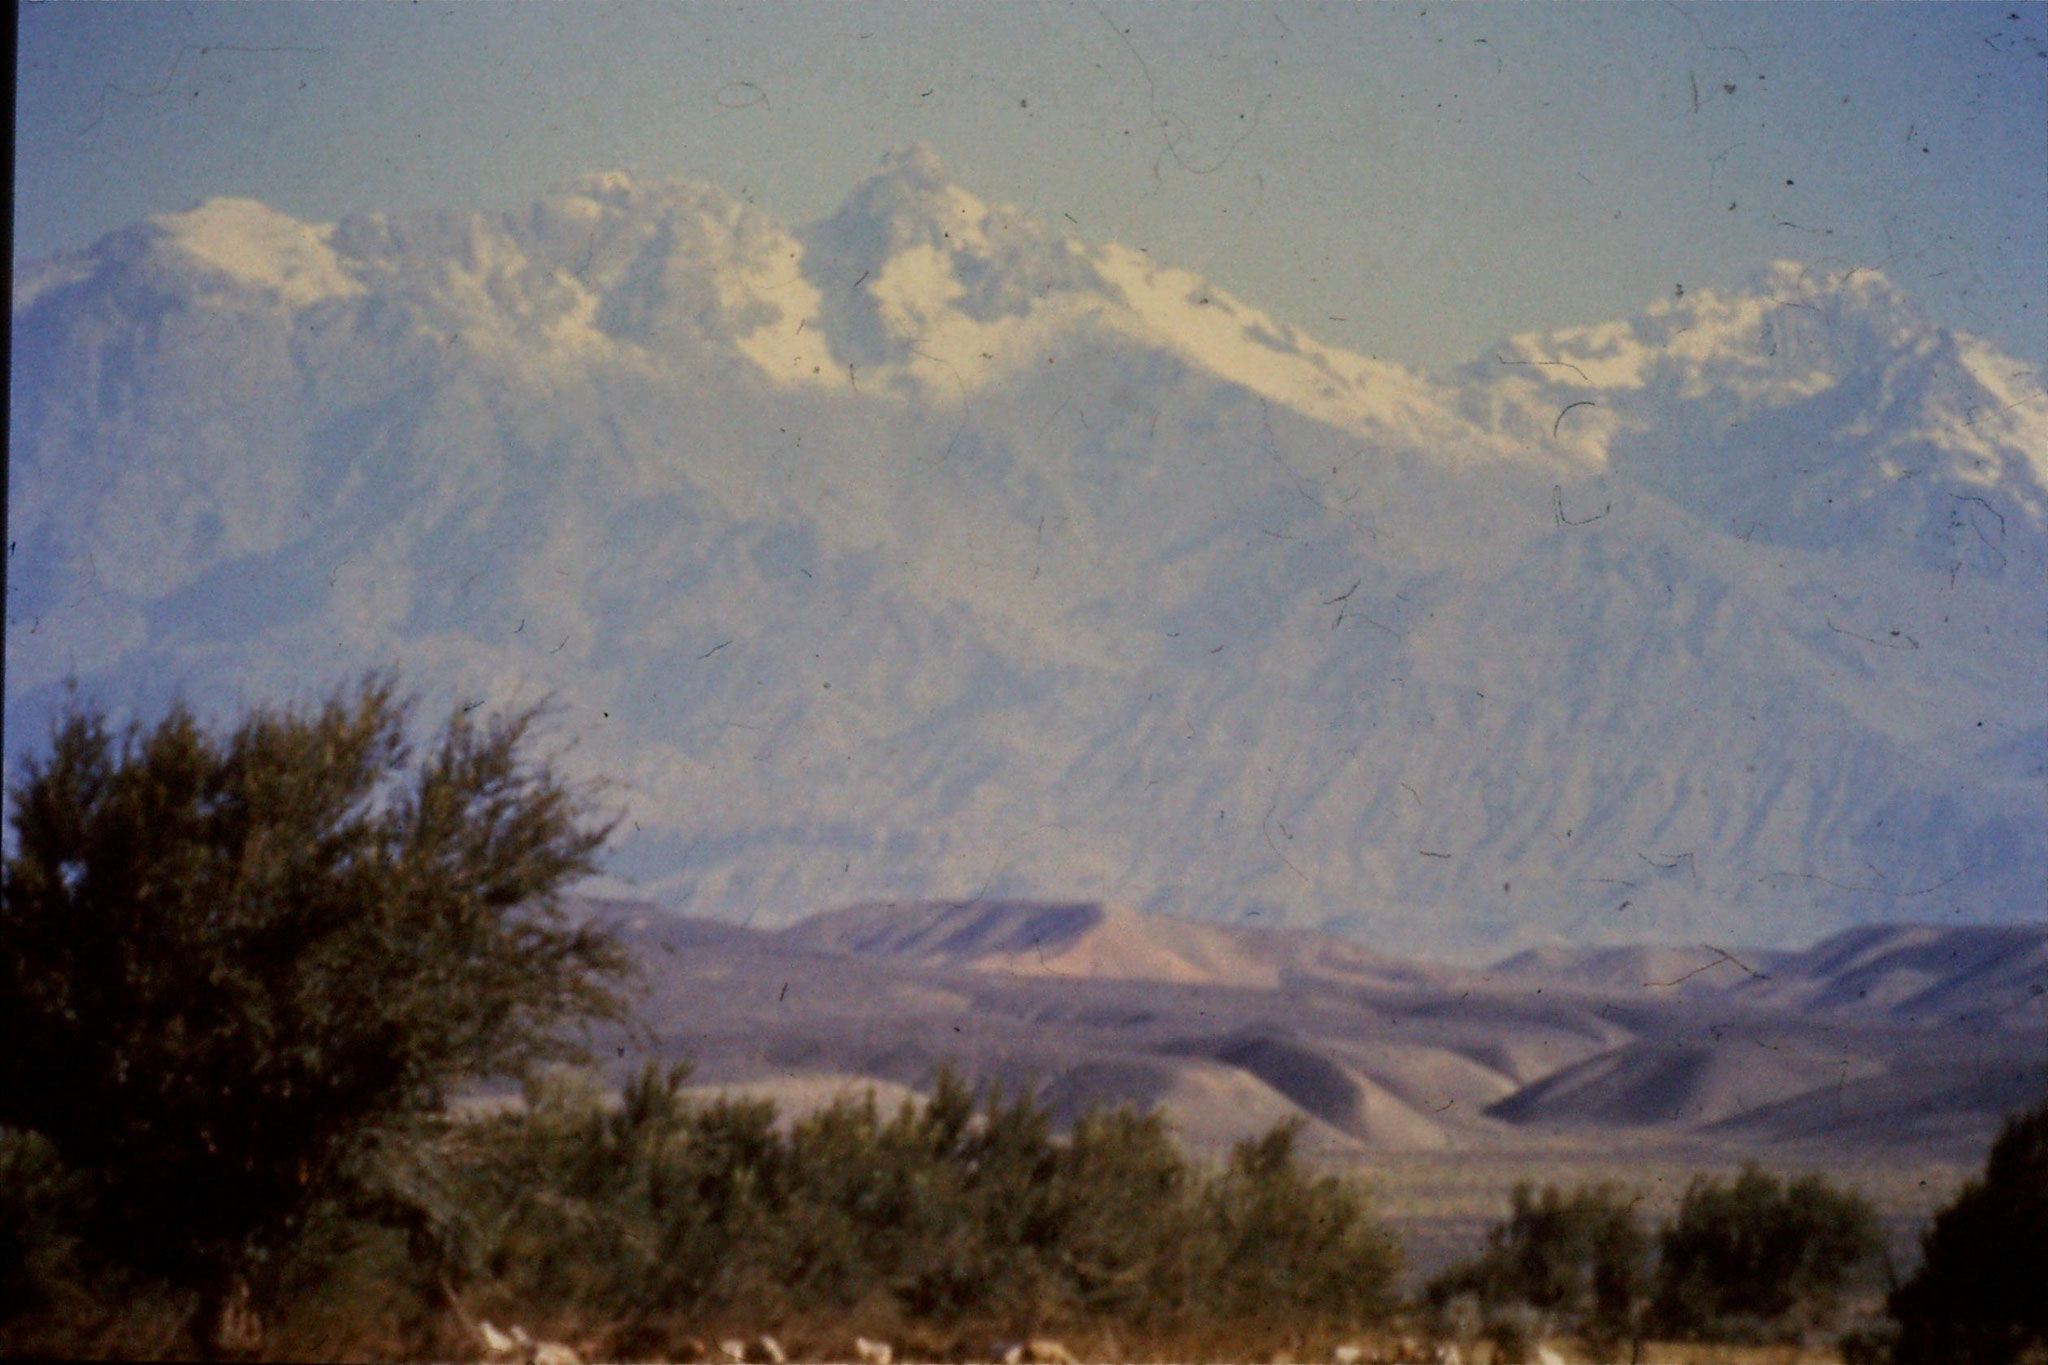 23/8/1989:15: Gansu, 2045 dry plain in front of snowy mountains